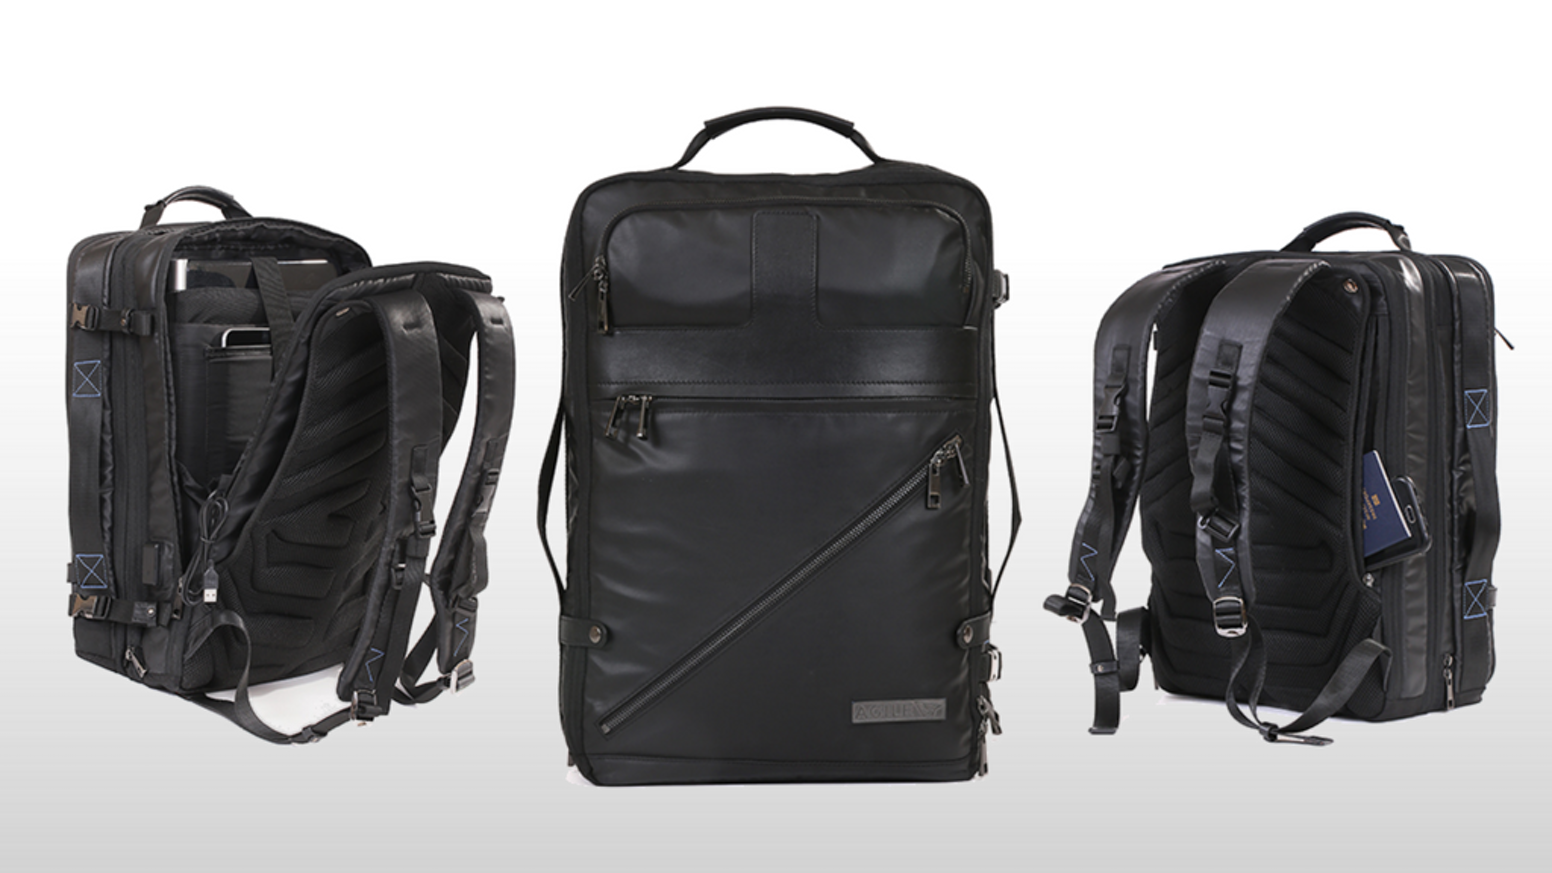 Agile | Your Premium Modular Backpack for Work | Travel